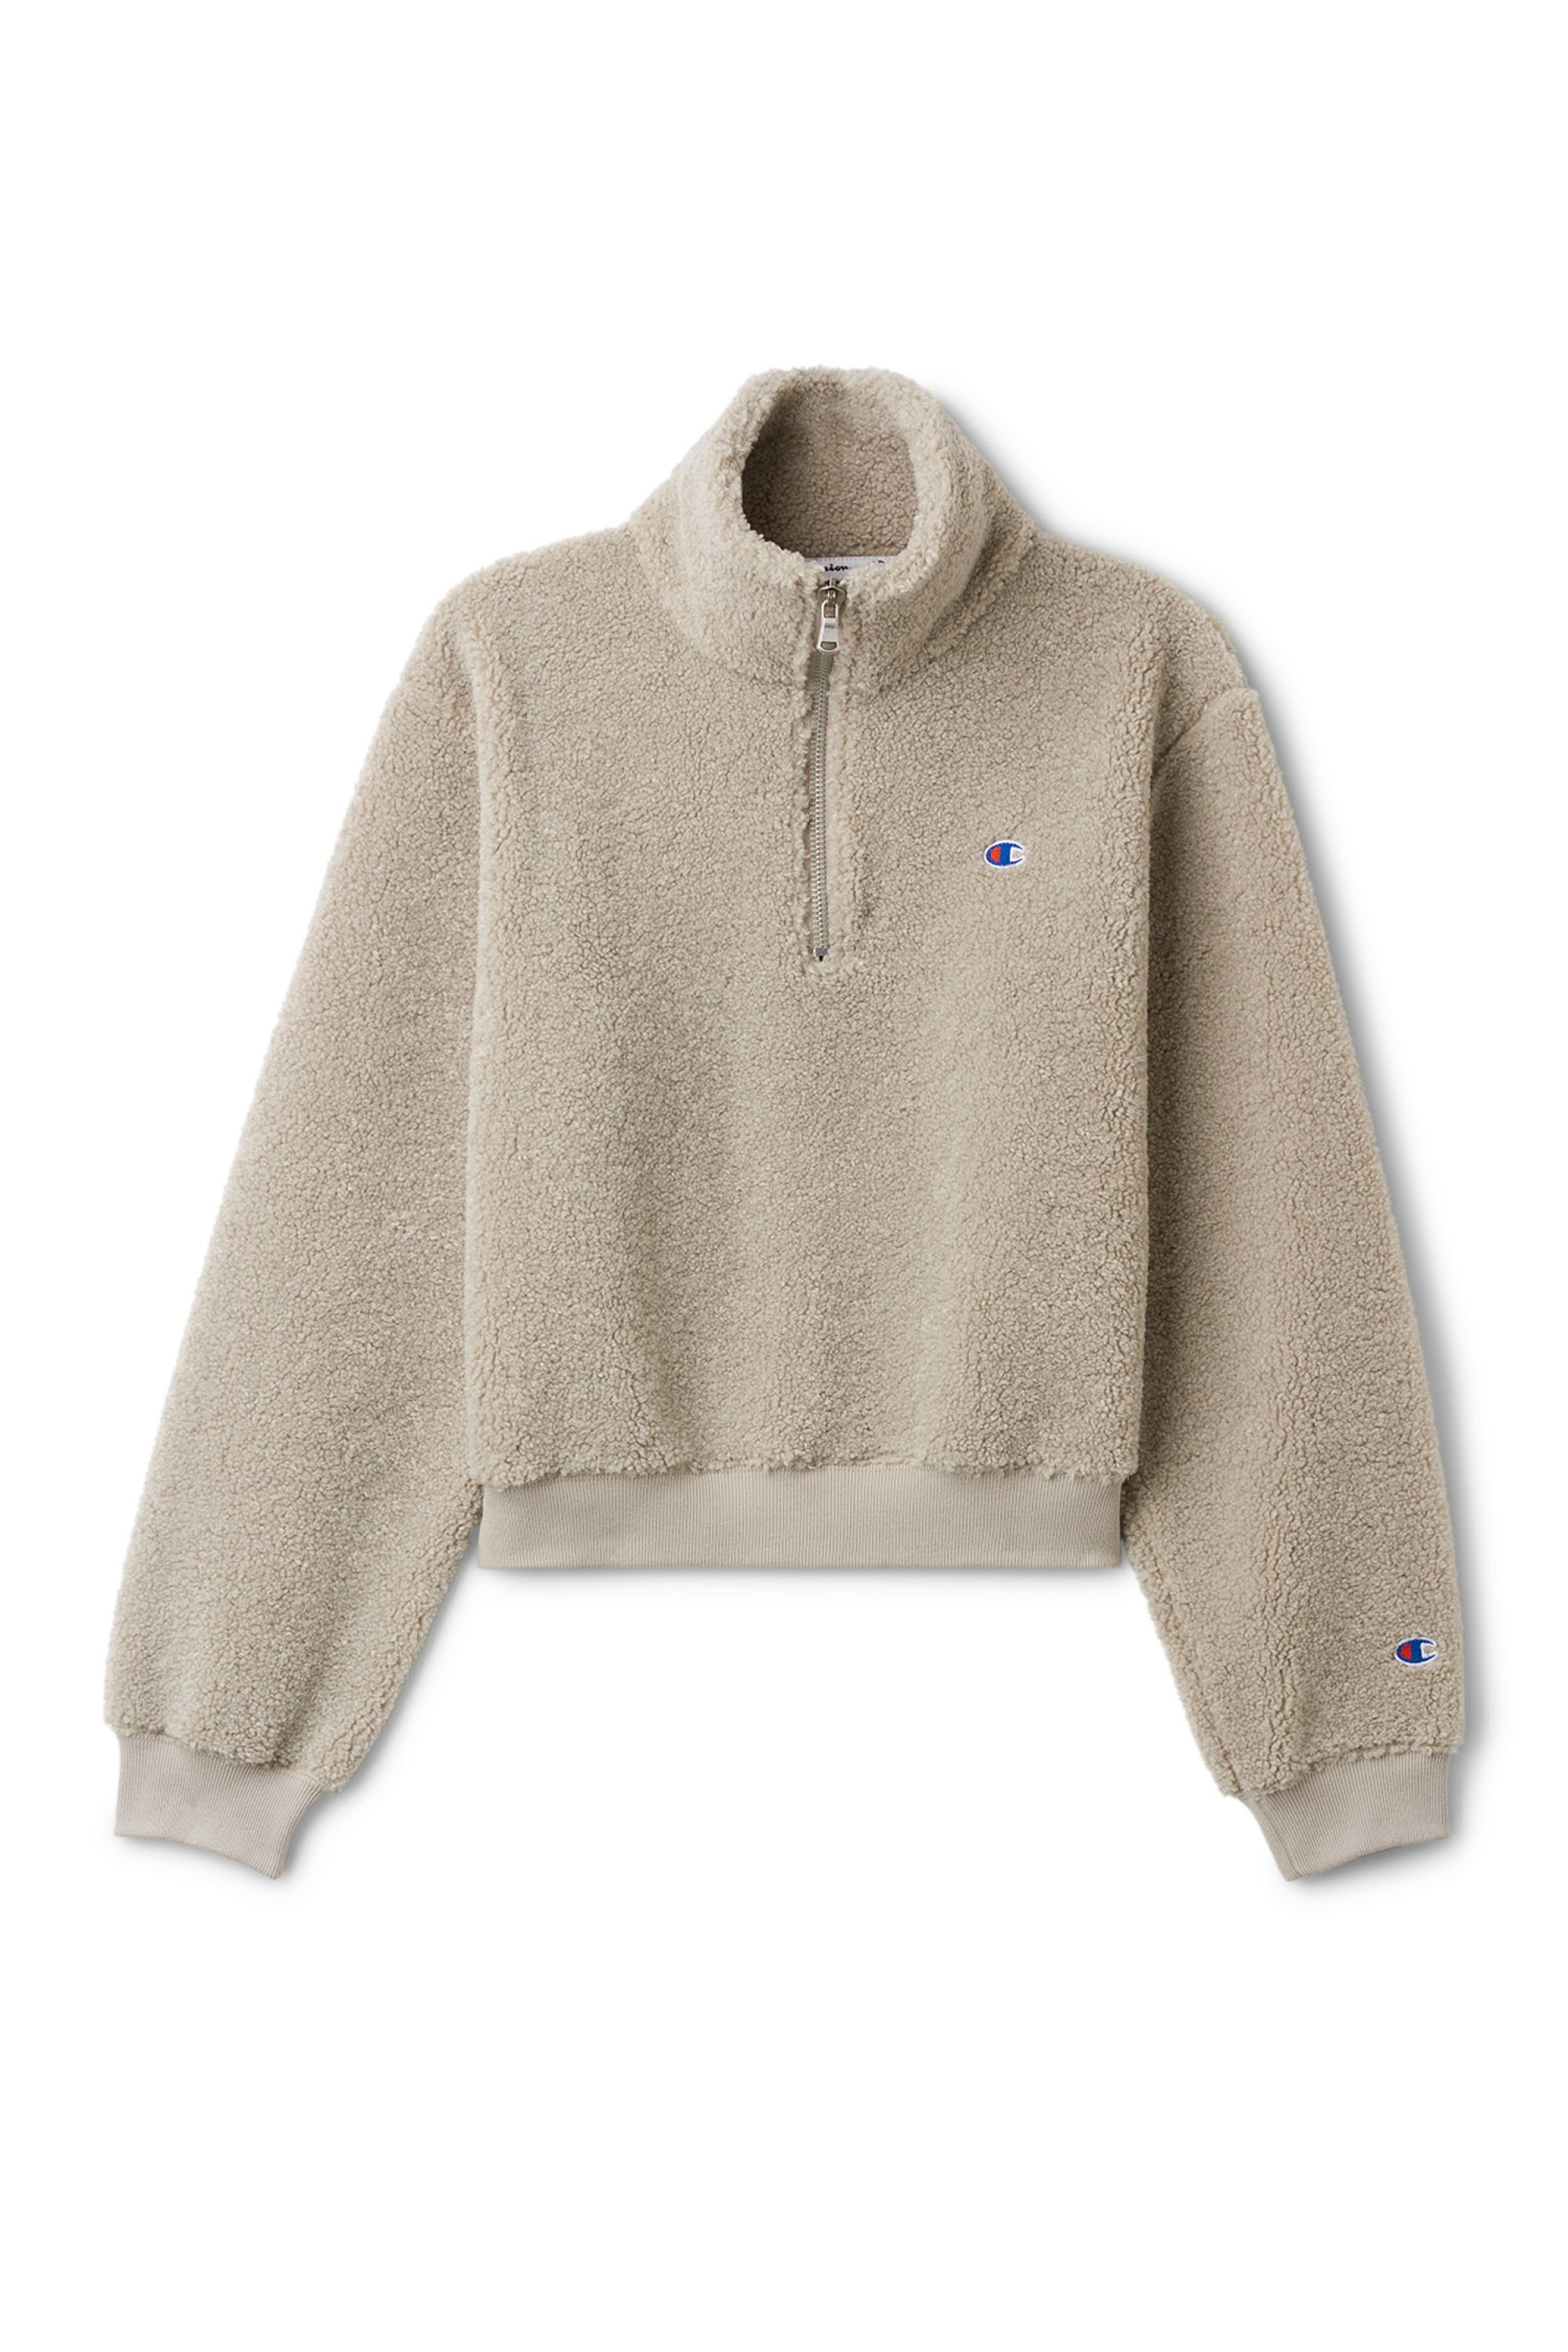 002901b17872 The Flow Sherpa Turtleneck by Champion is a short sweatshirt in a soft  teddy material. A turtleneck with a zipper